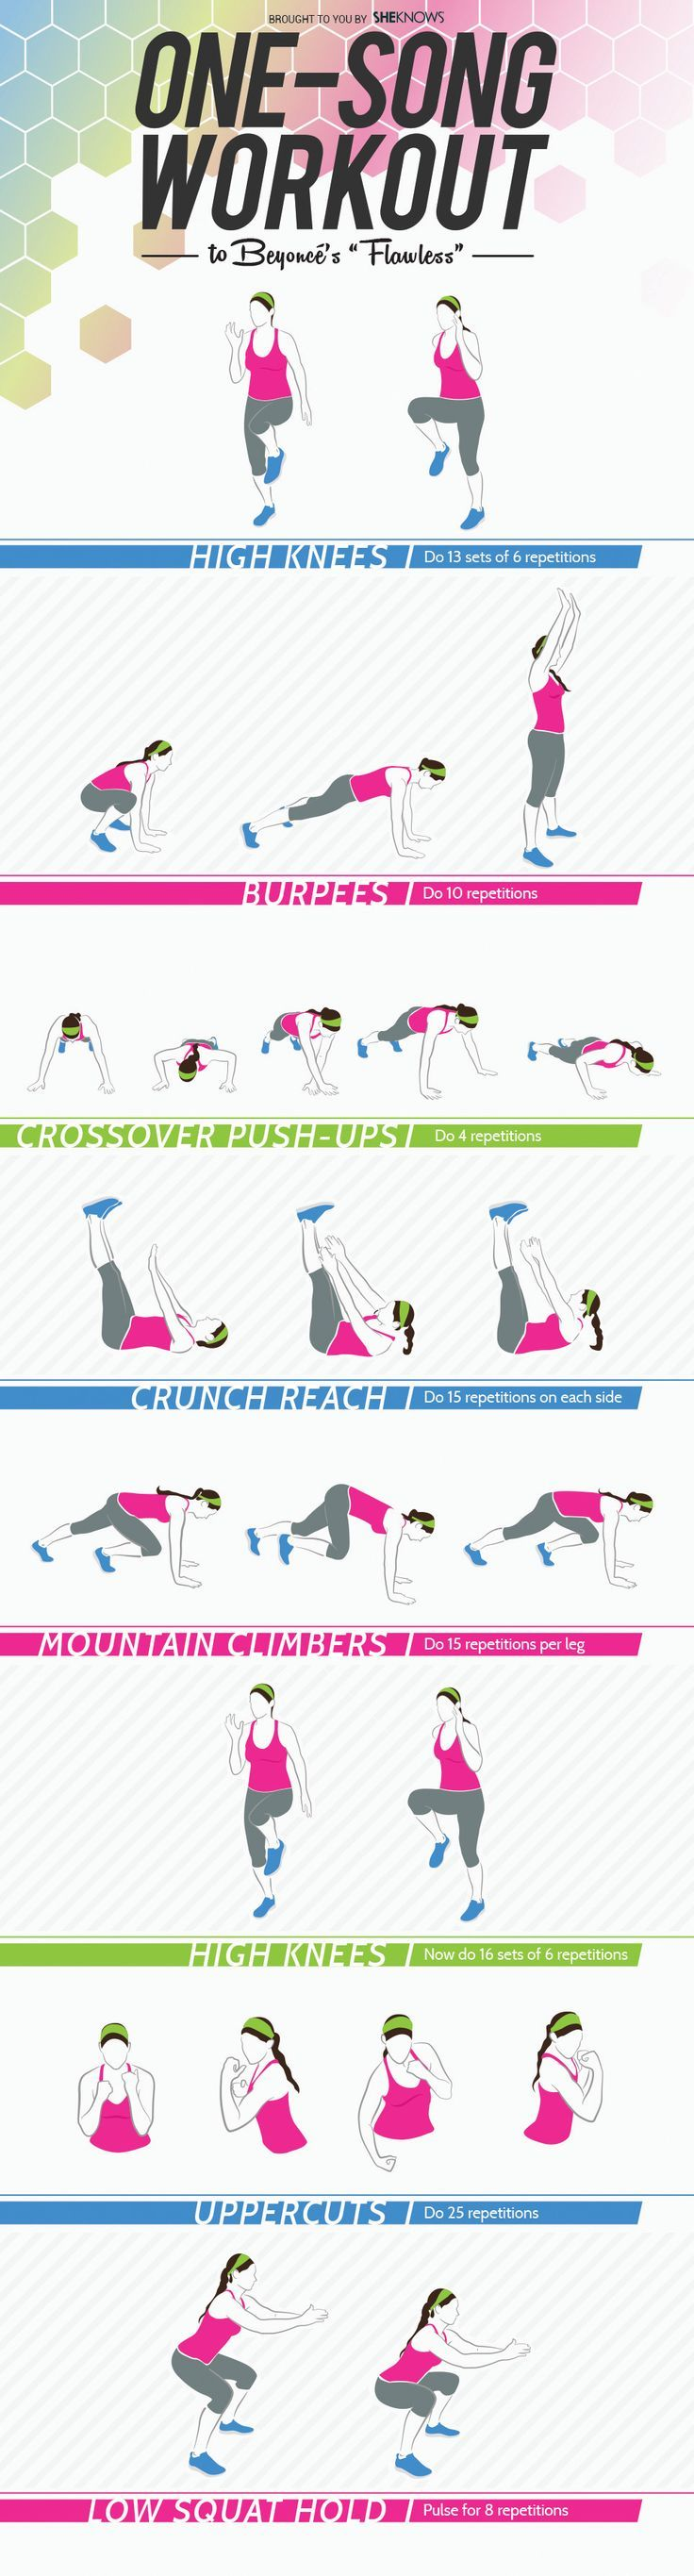 One-song workout! I can totally do this to Beyonce.